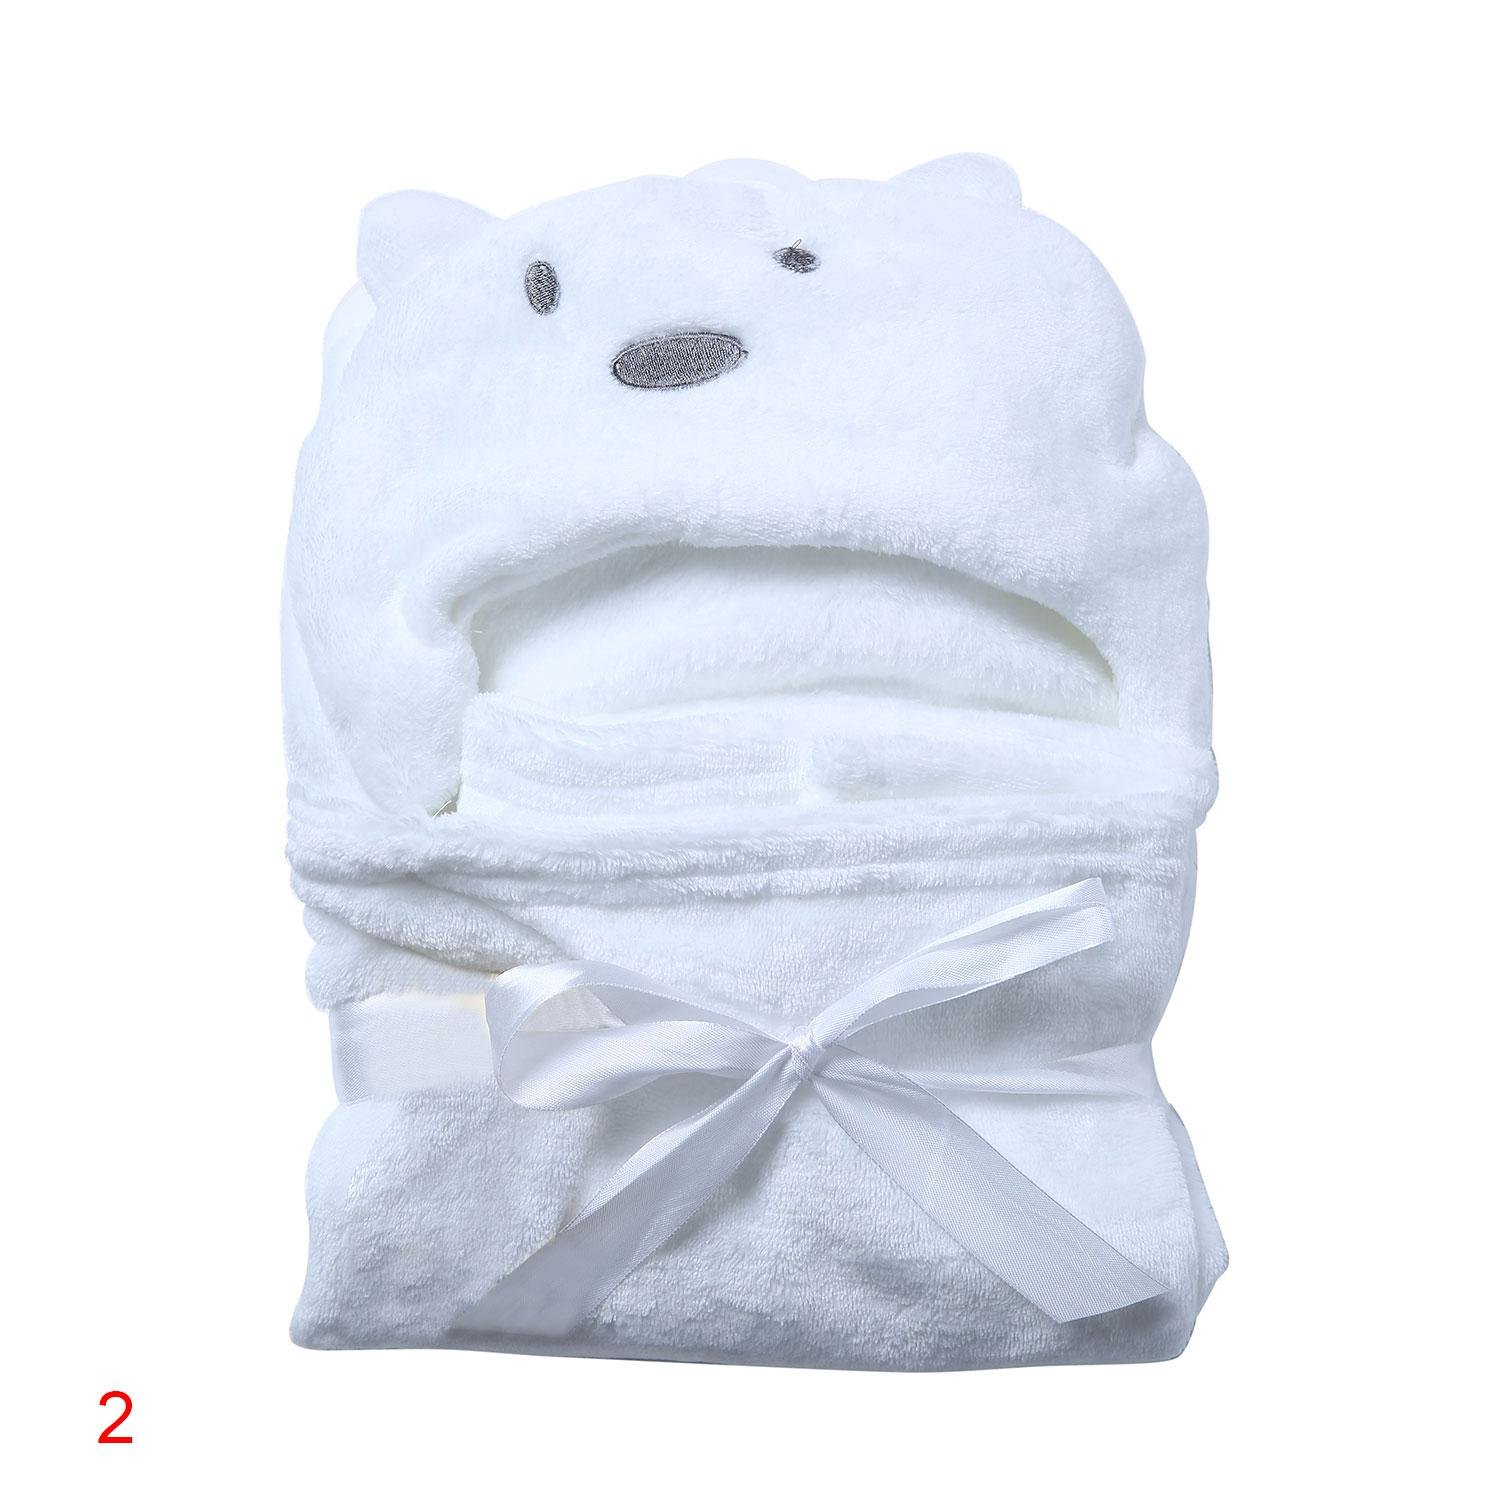 Baby Boys/Girls Bath Bathrobe Cute Bear Hooded Fleece Infant Toddler Bathing Wrap Towel Blanket For Kid 0-6 Years Old Aolvo